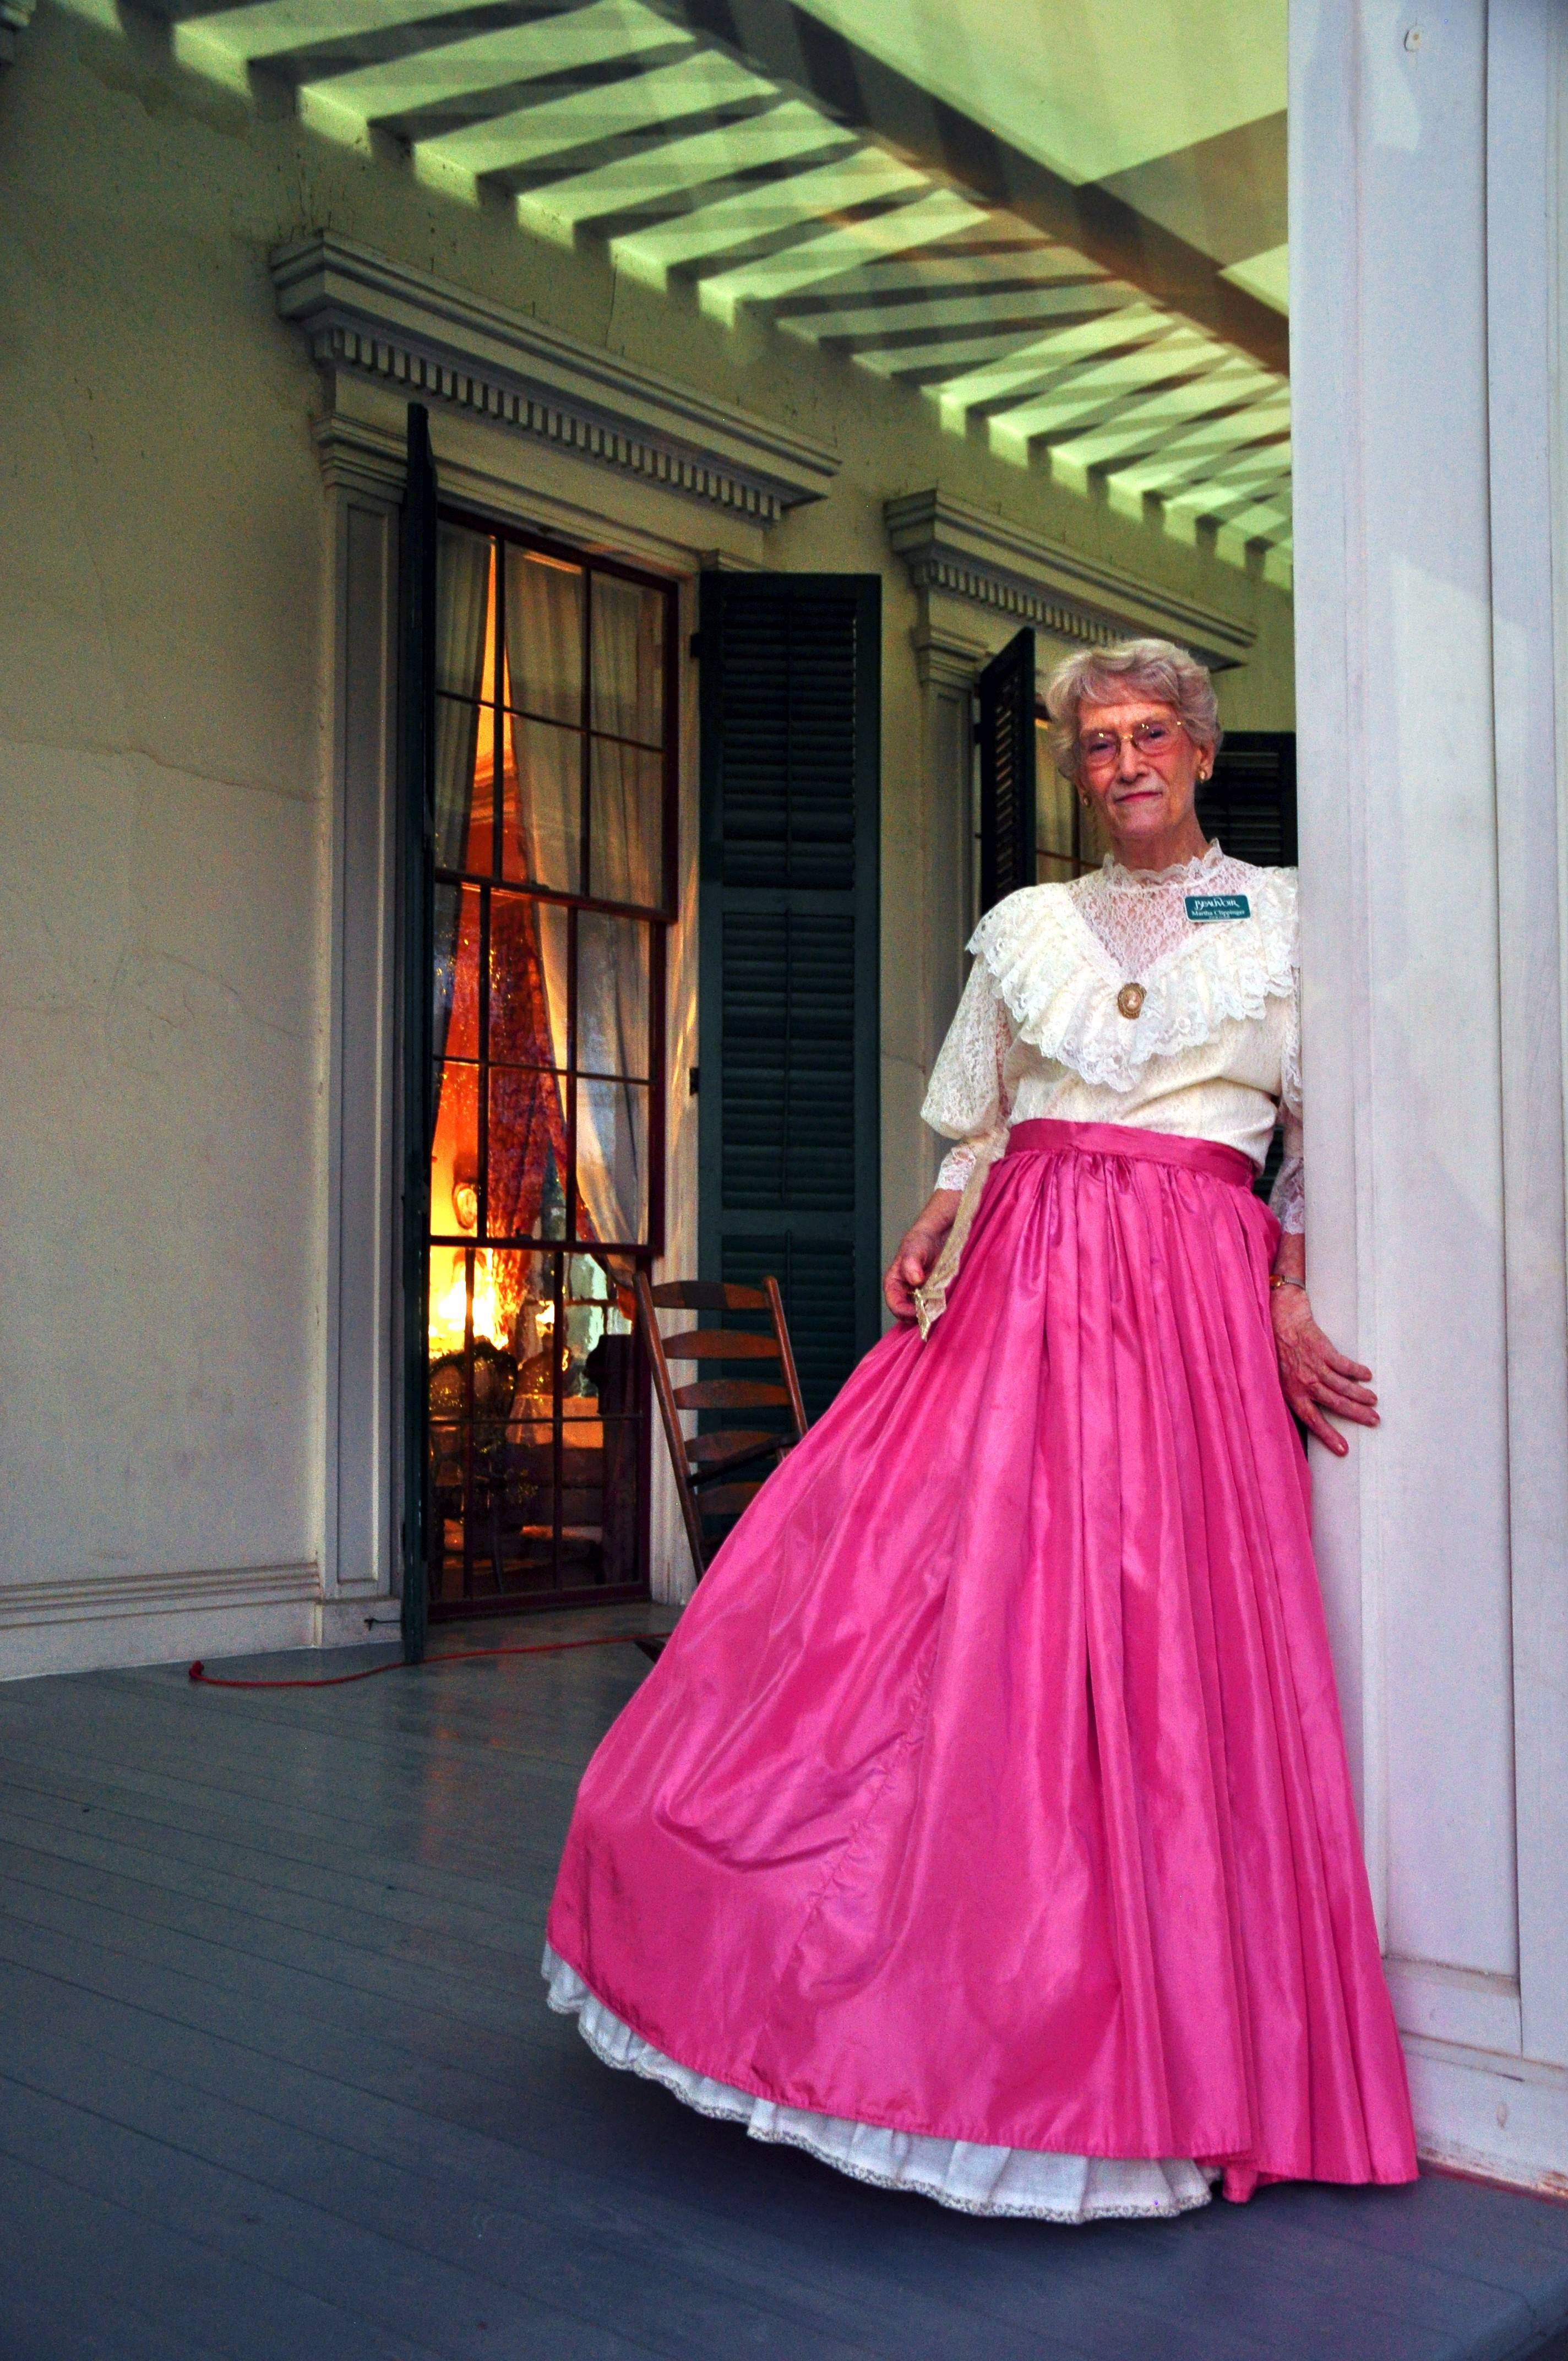 A guide dressed in antebellum costume greets visitors to Beauvoir, the home of Confederate President Jefferson Davis.